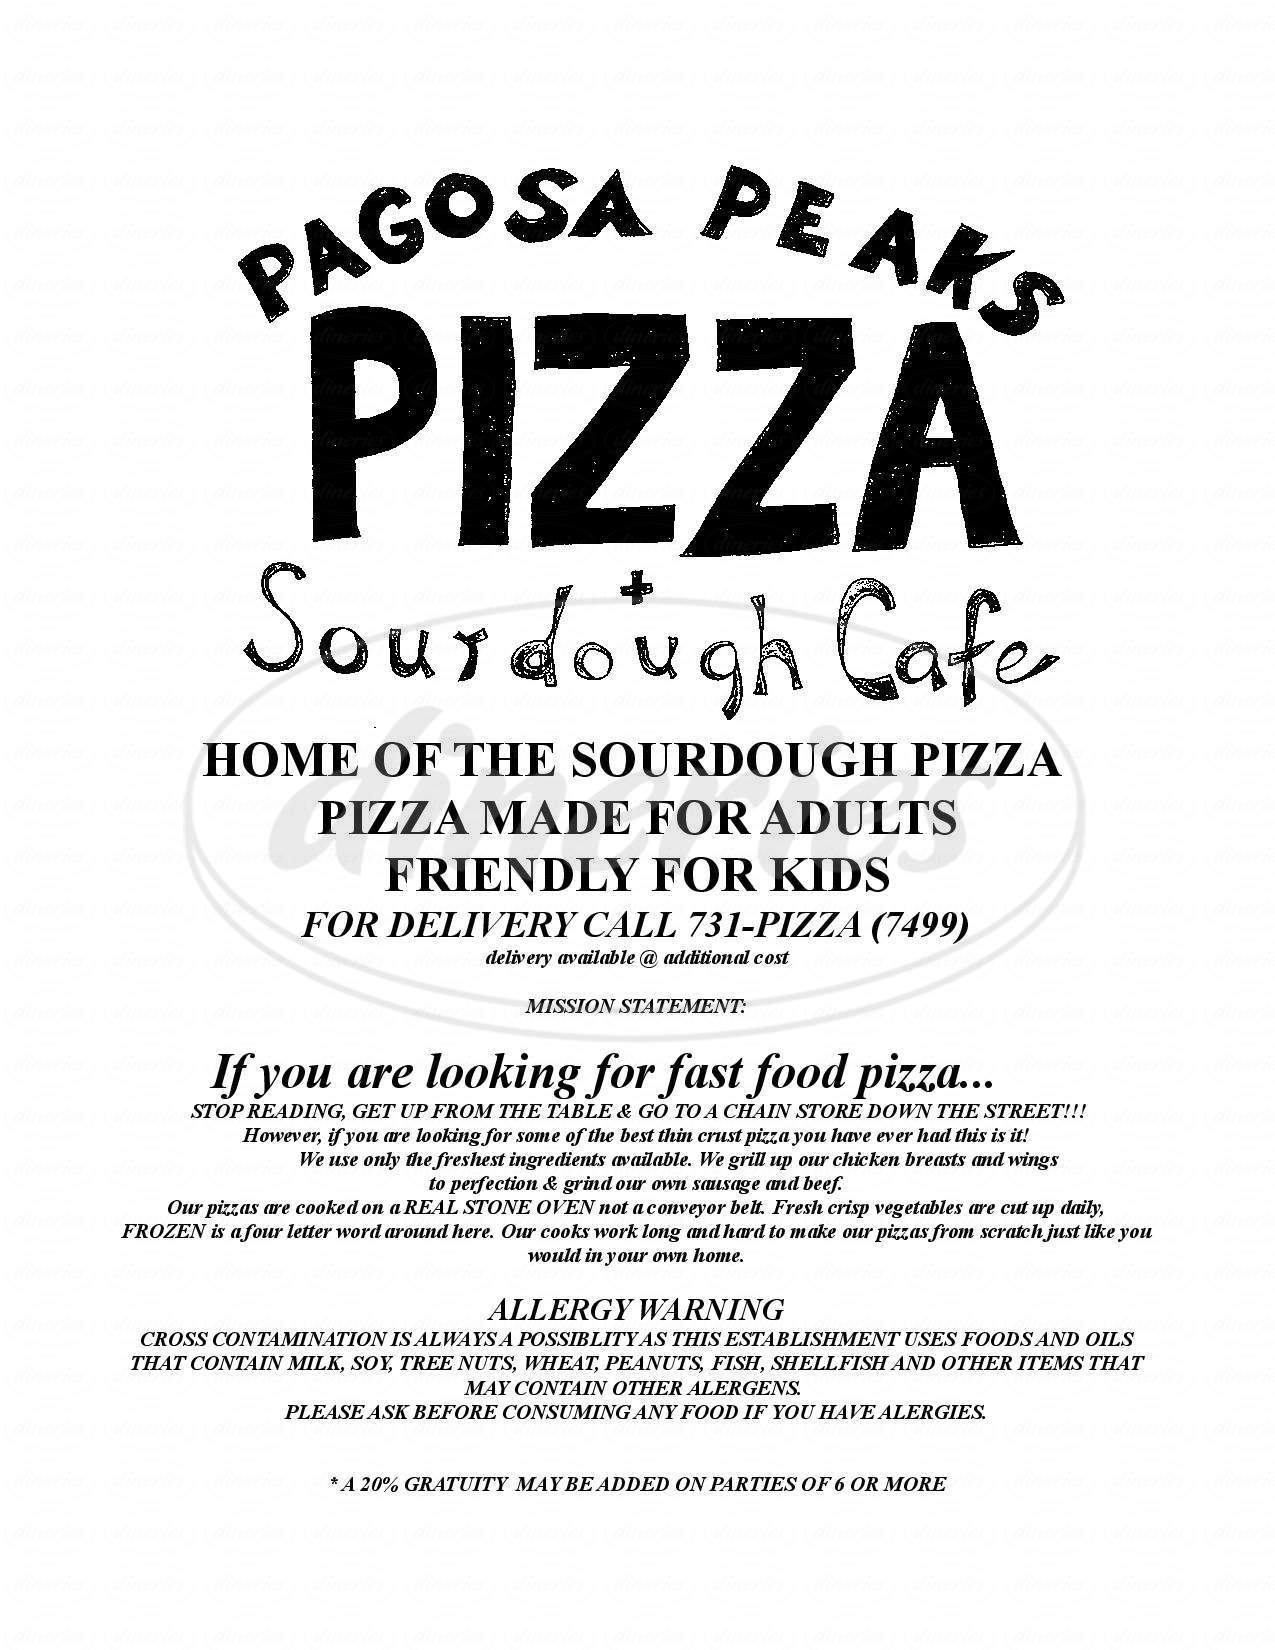 menu for Pagosa Peaks Pizza